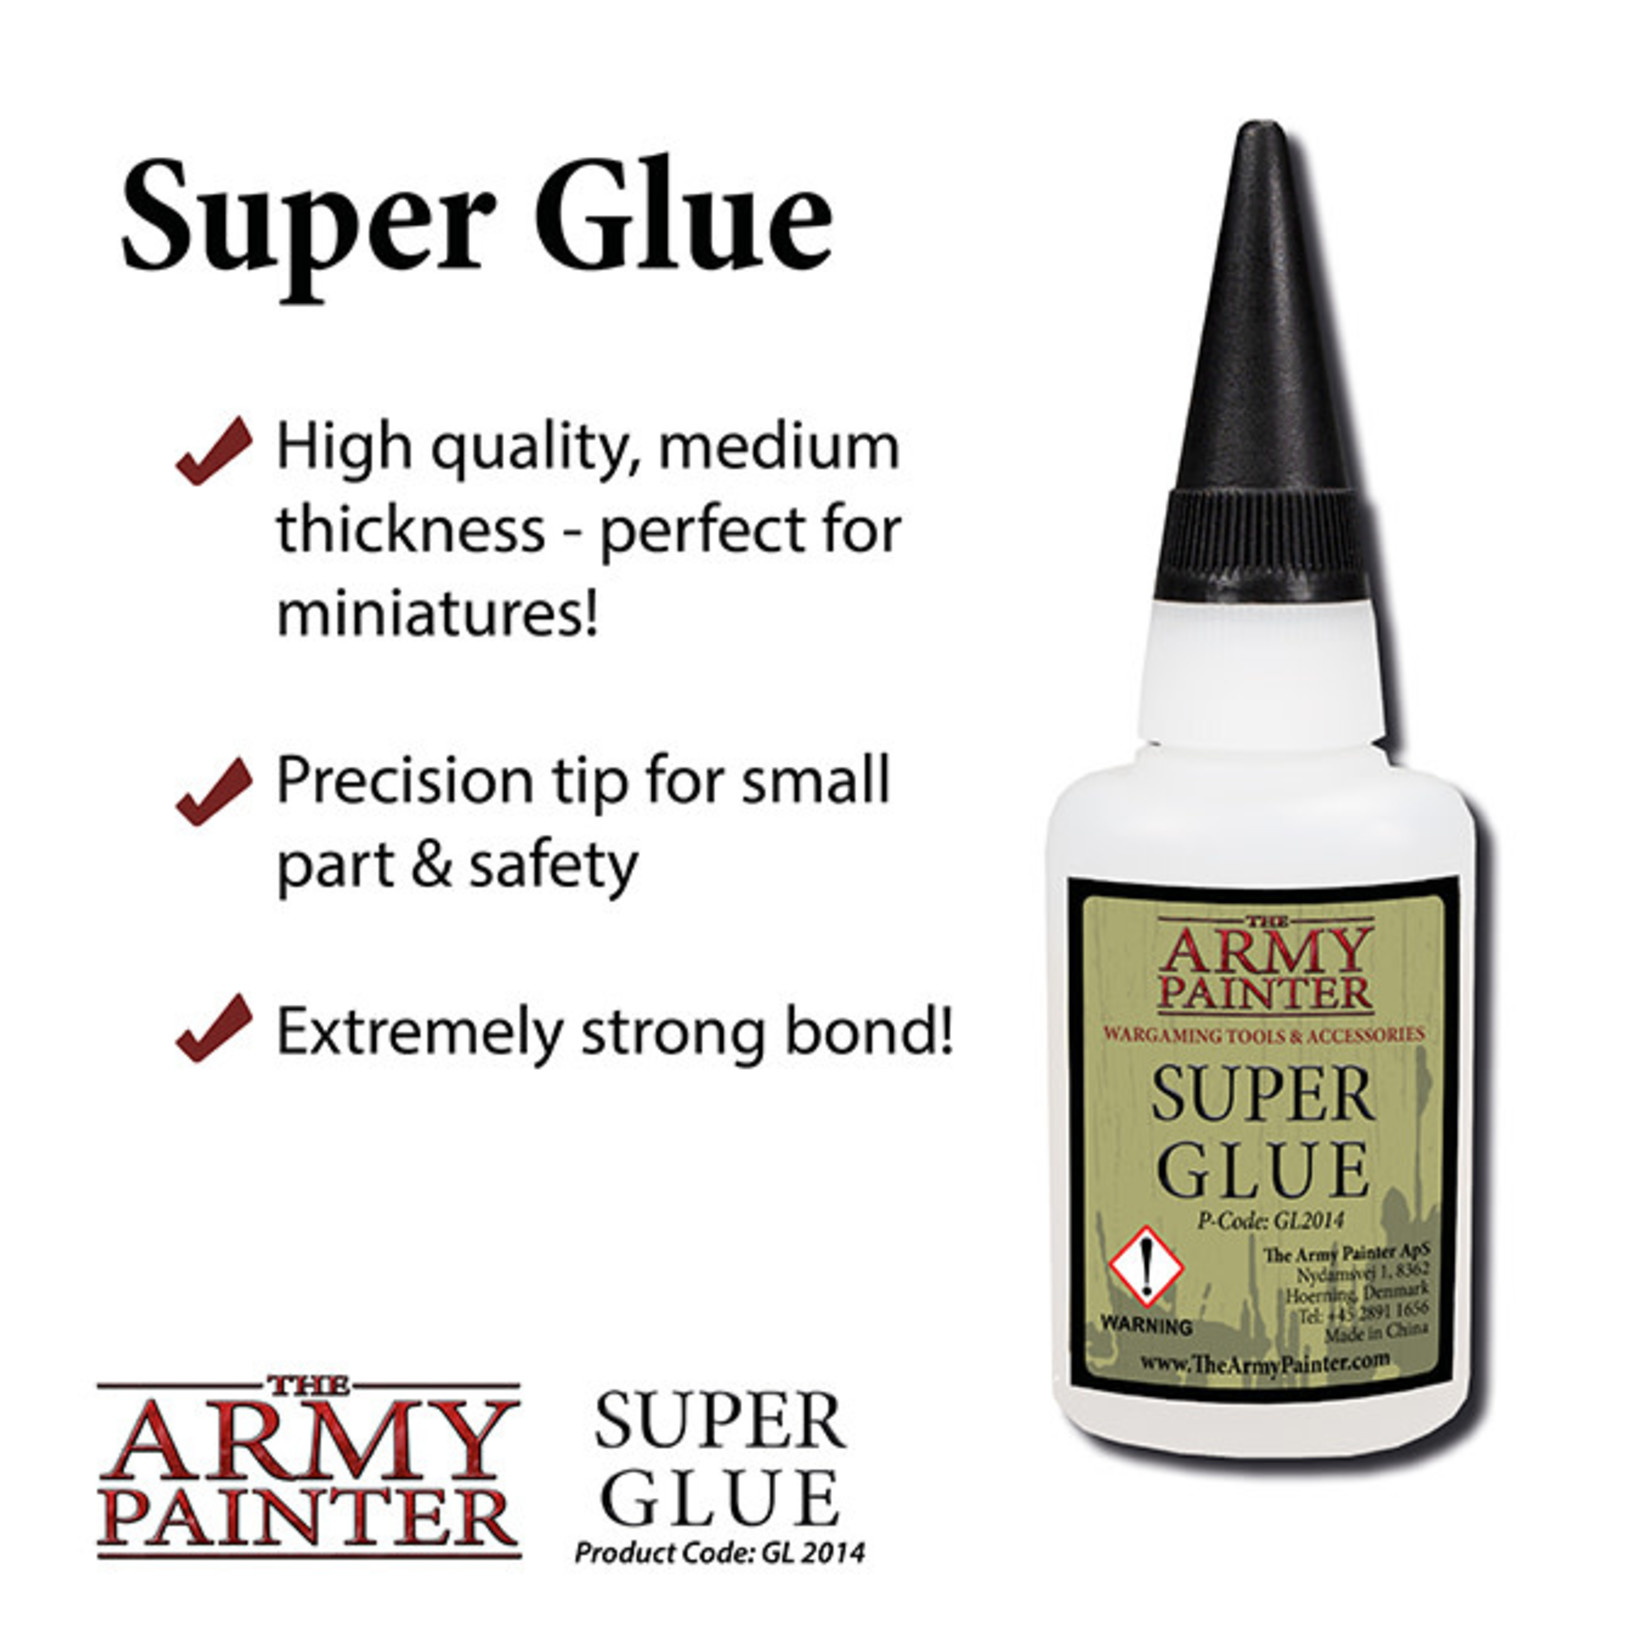 The Army Painter Super Glue